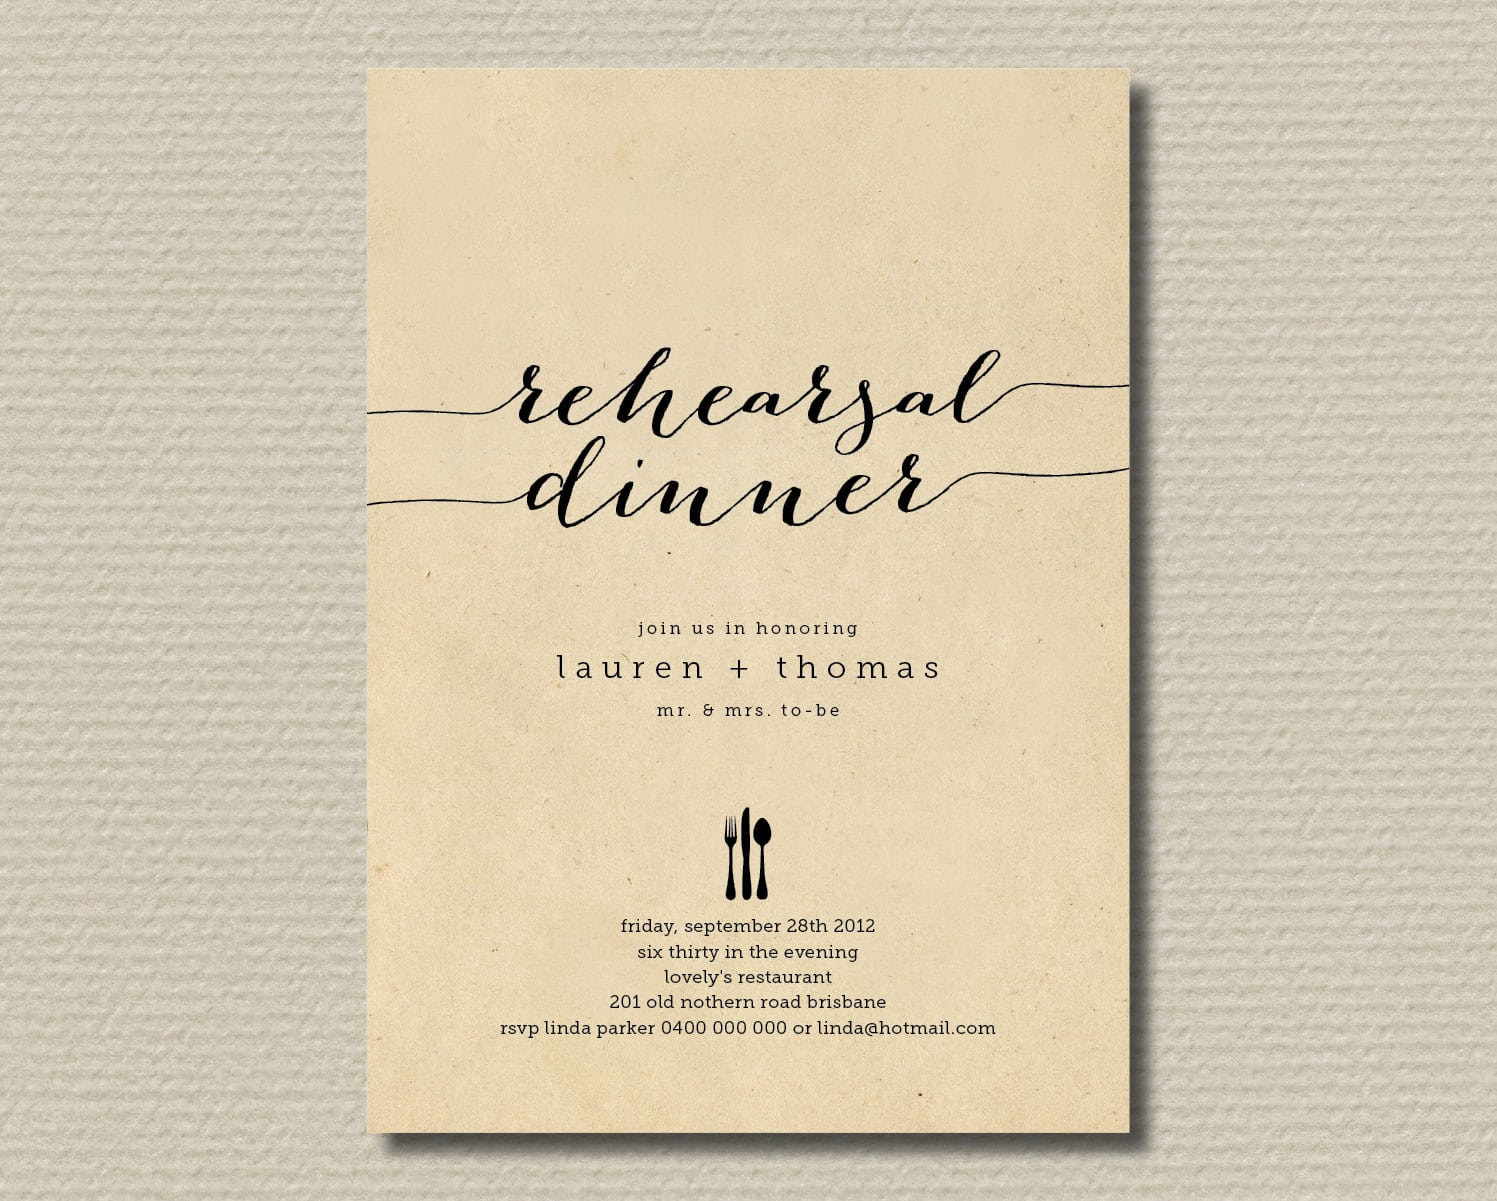 Free Dinner Party Invitation Template Simple Free Dinner Party